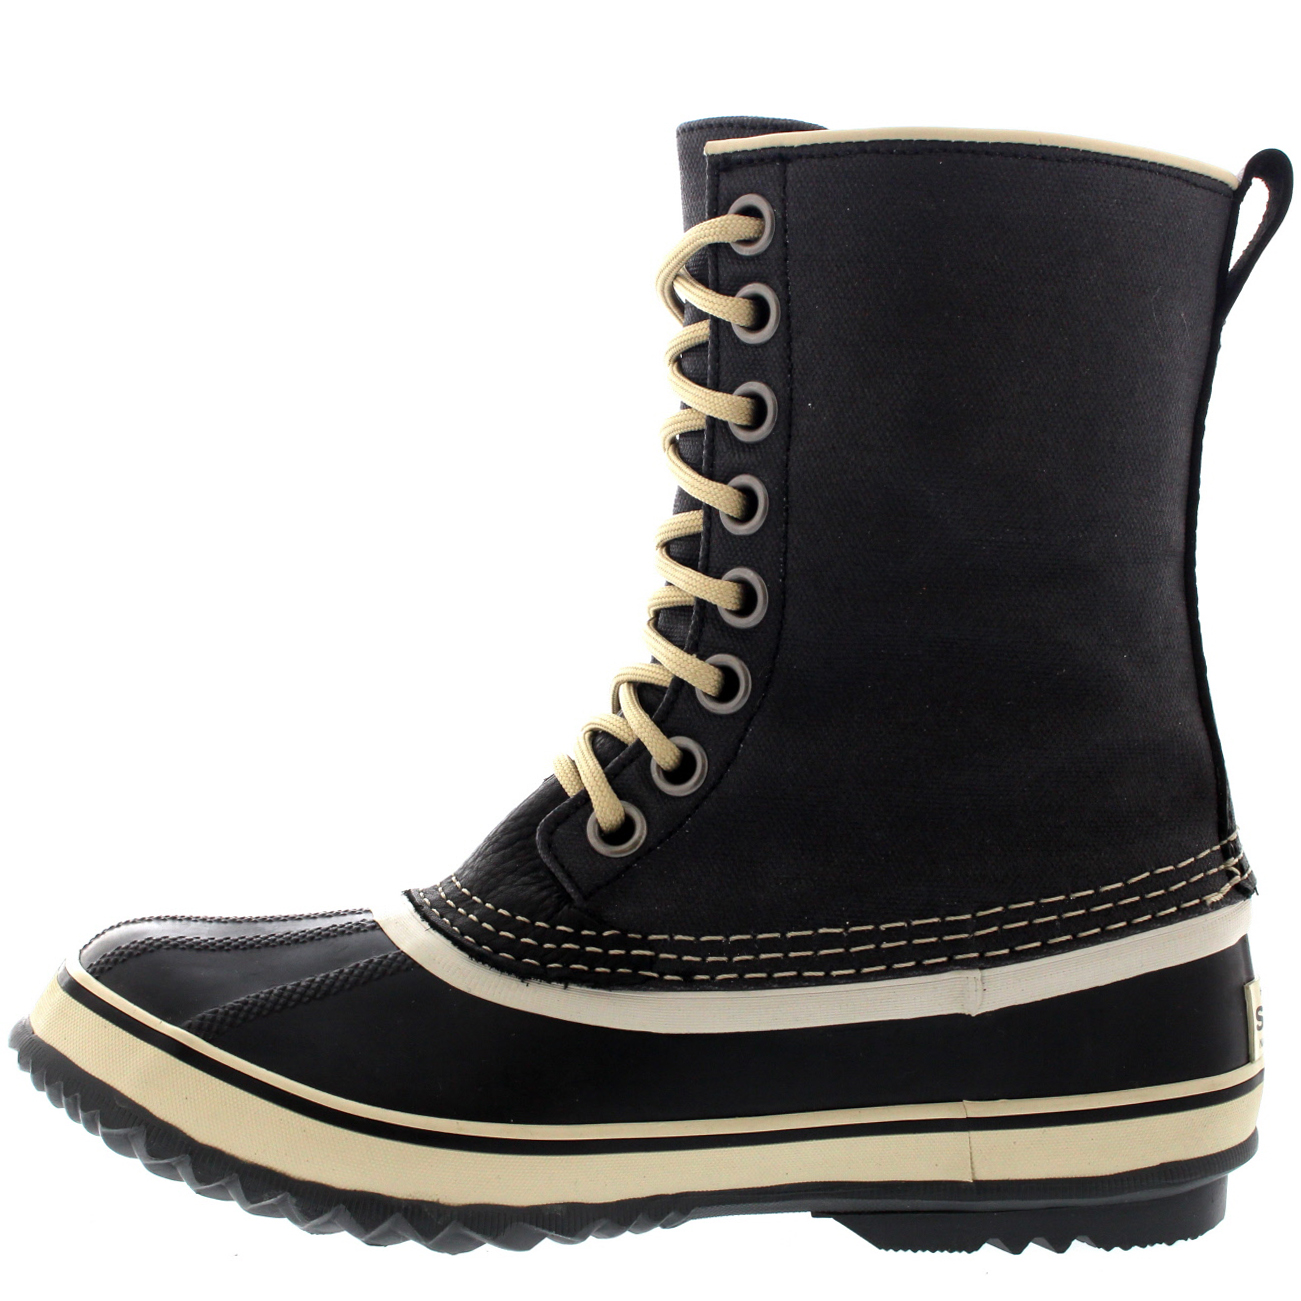 Lastest Boots Are The Order Of The Day And Luckily For Us All, Moon Boots Are Back Your Little Women And Men Can Toast Their Feet In  These Tofino Boots From Boot Experts Sorel Are Ideal For Warmth And Waterproof Comfort, Without Resorting To Ski